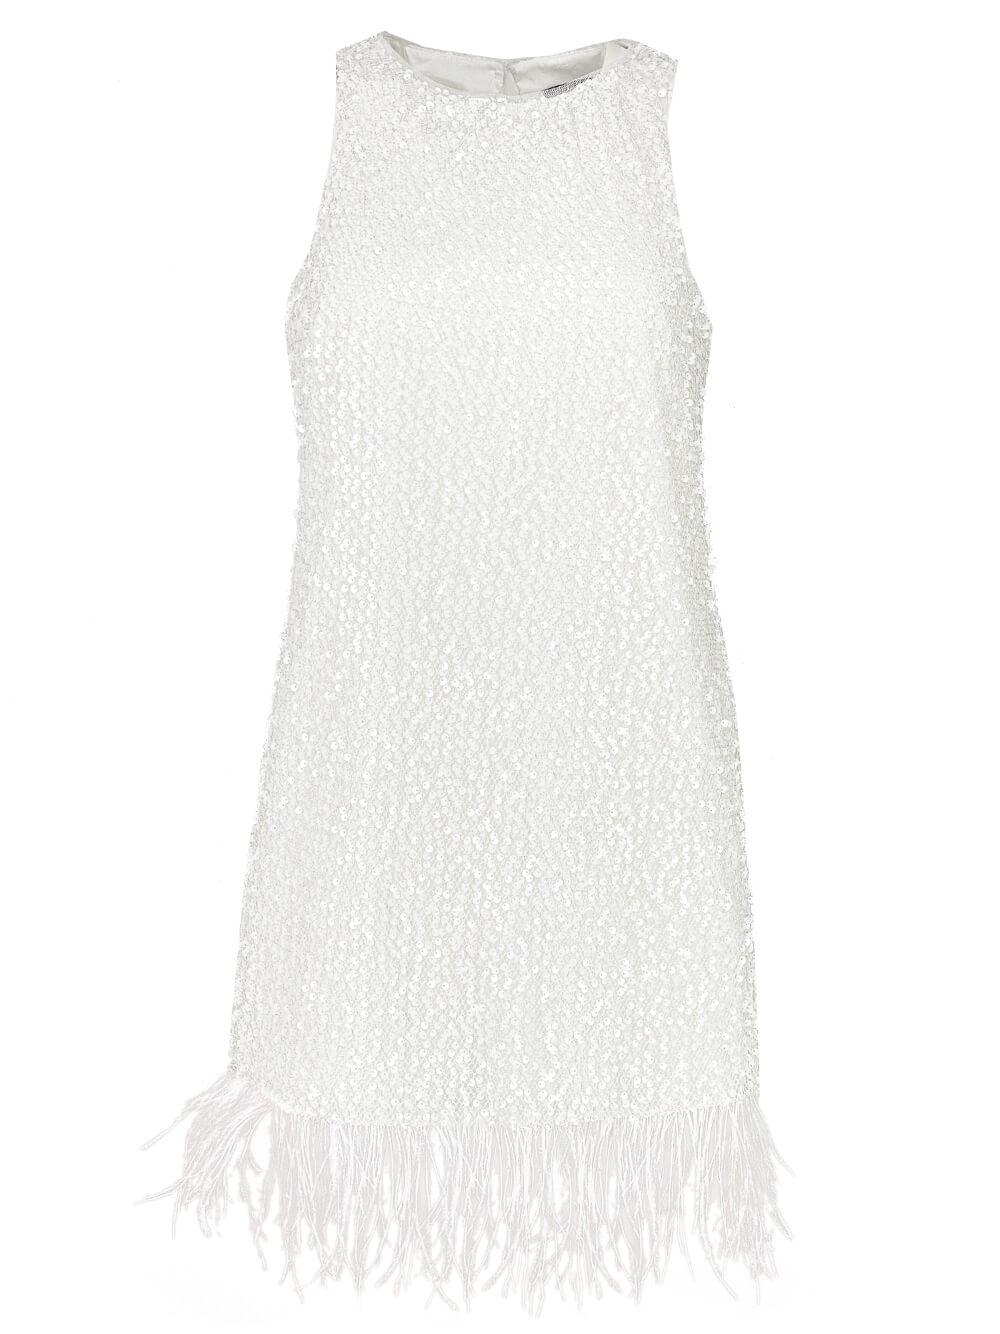 Sequin Mini Dress With Feather Trim